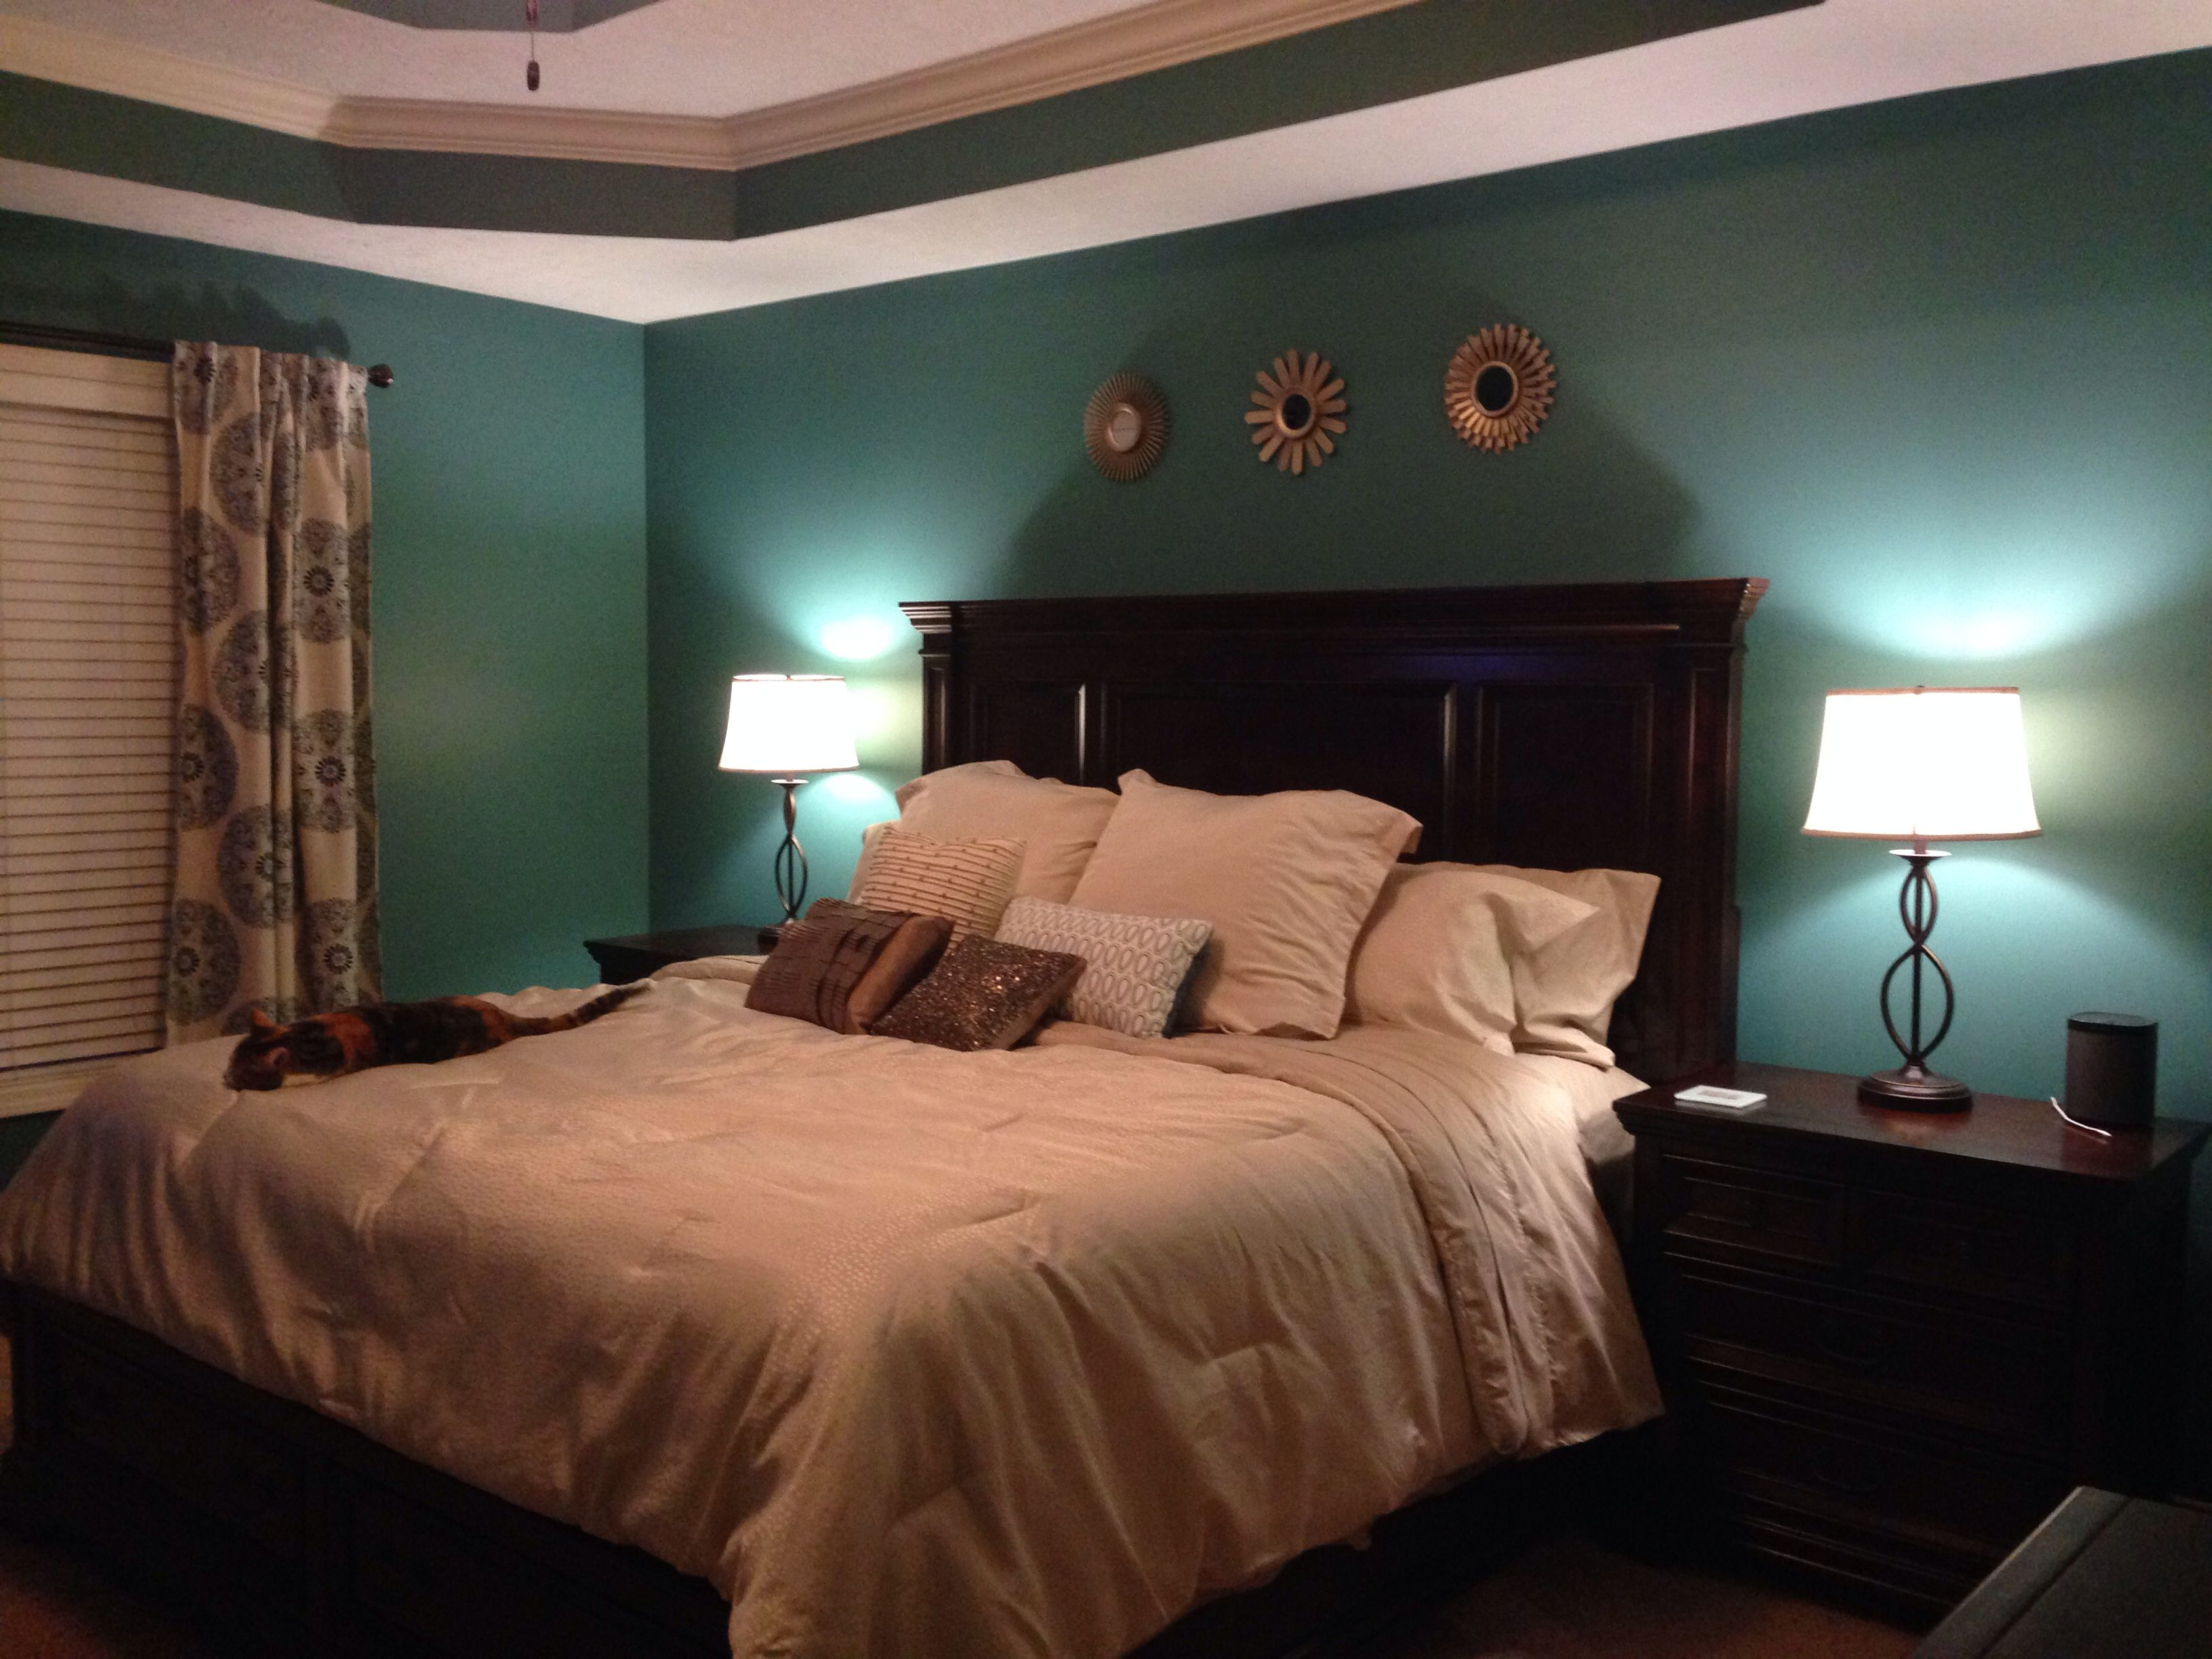 This our bedroom after the makeover. We used Valspar Liquid Jade